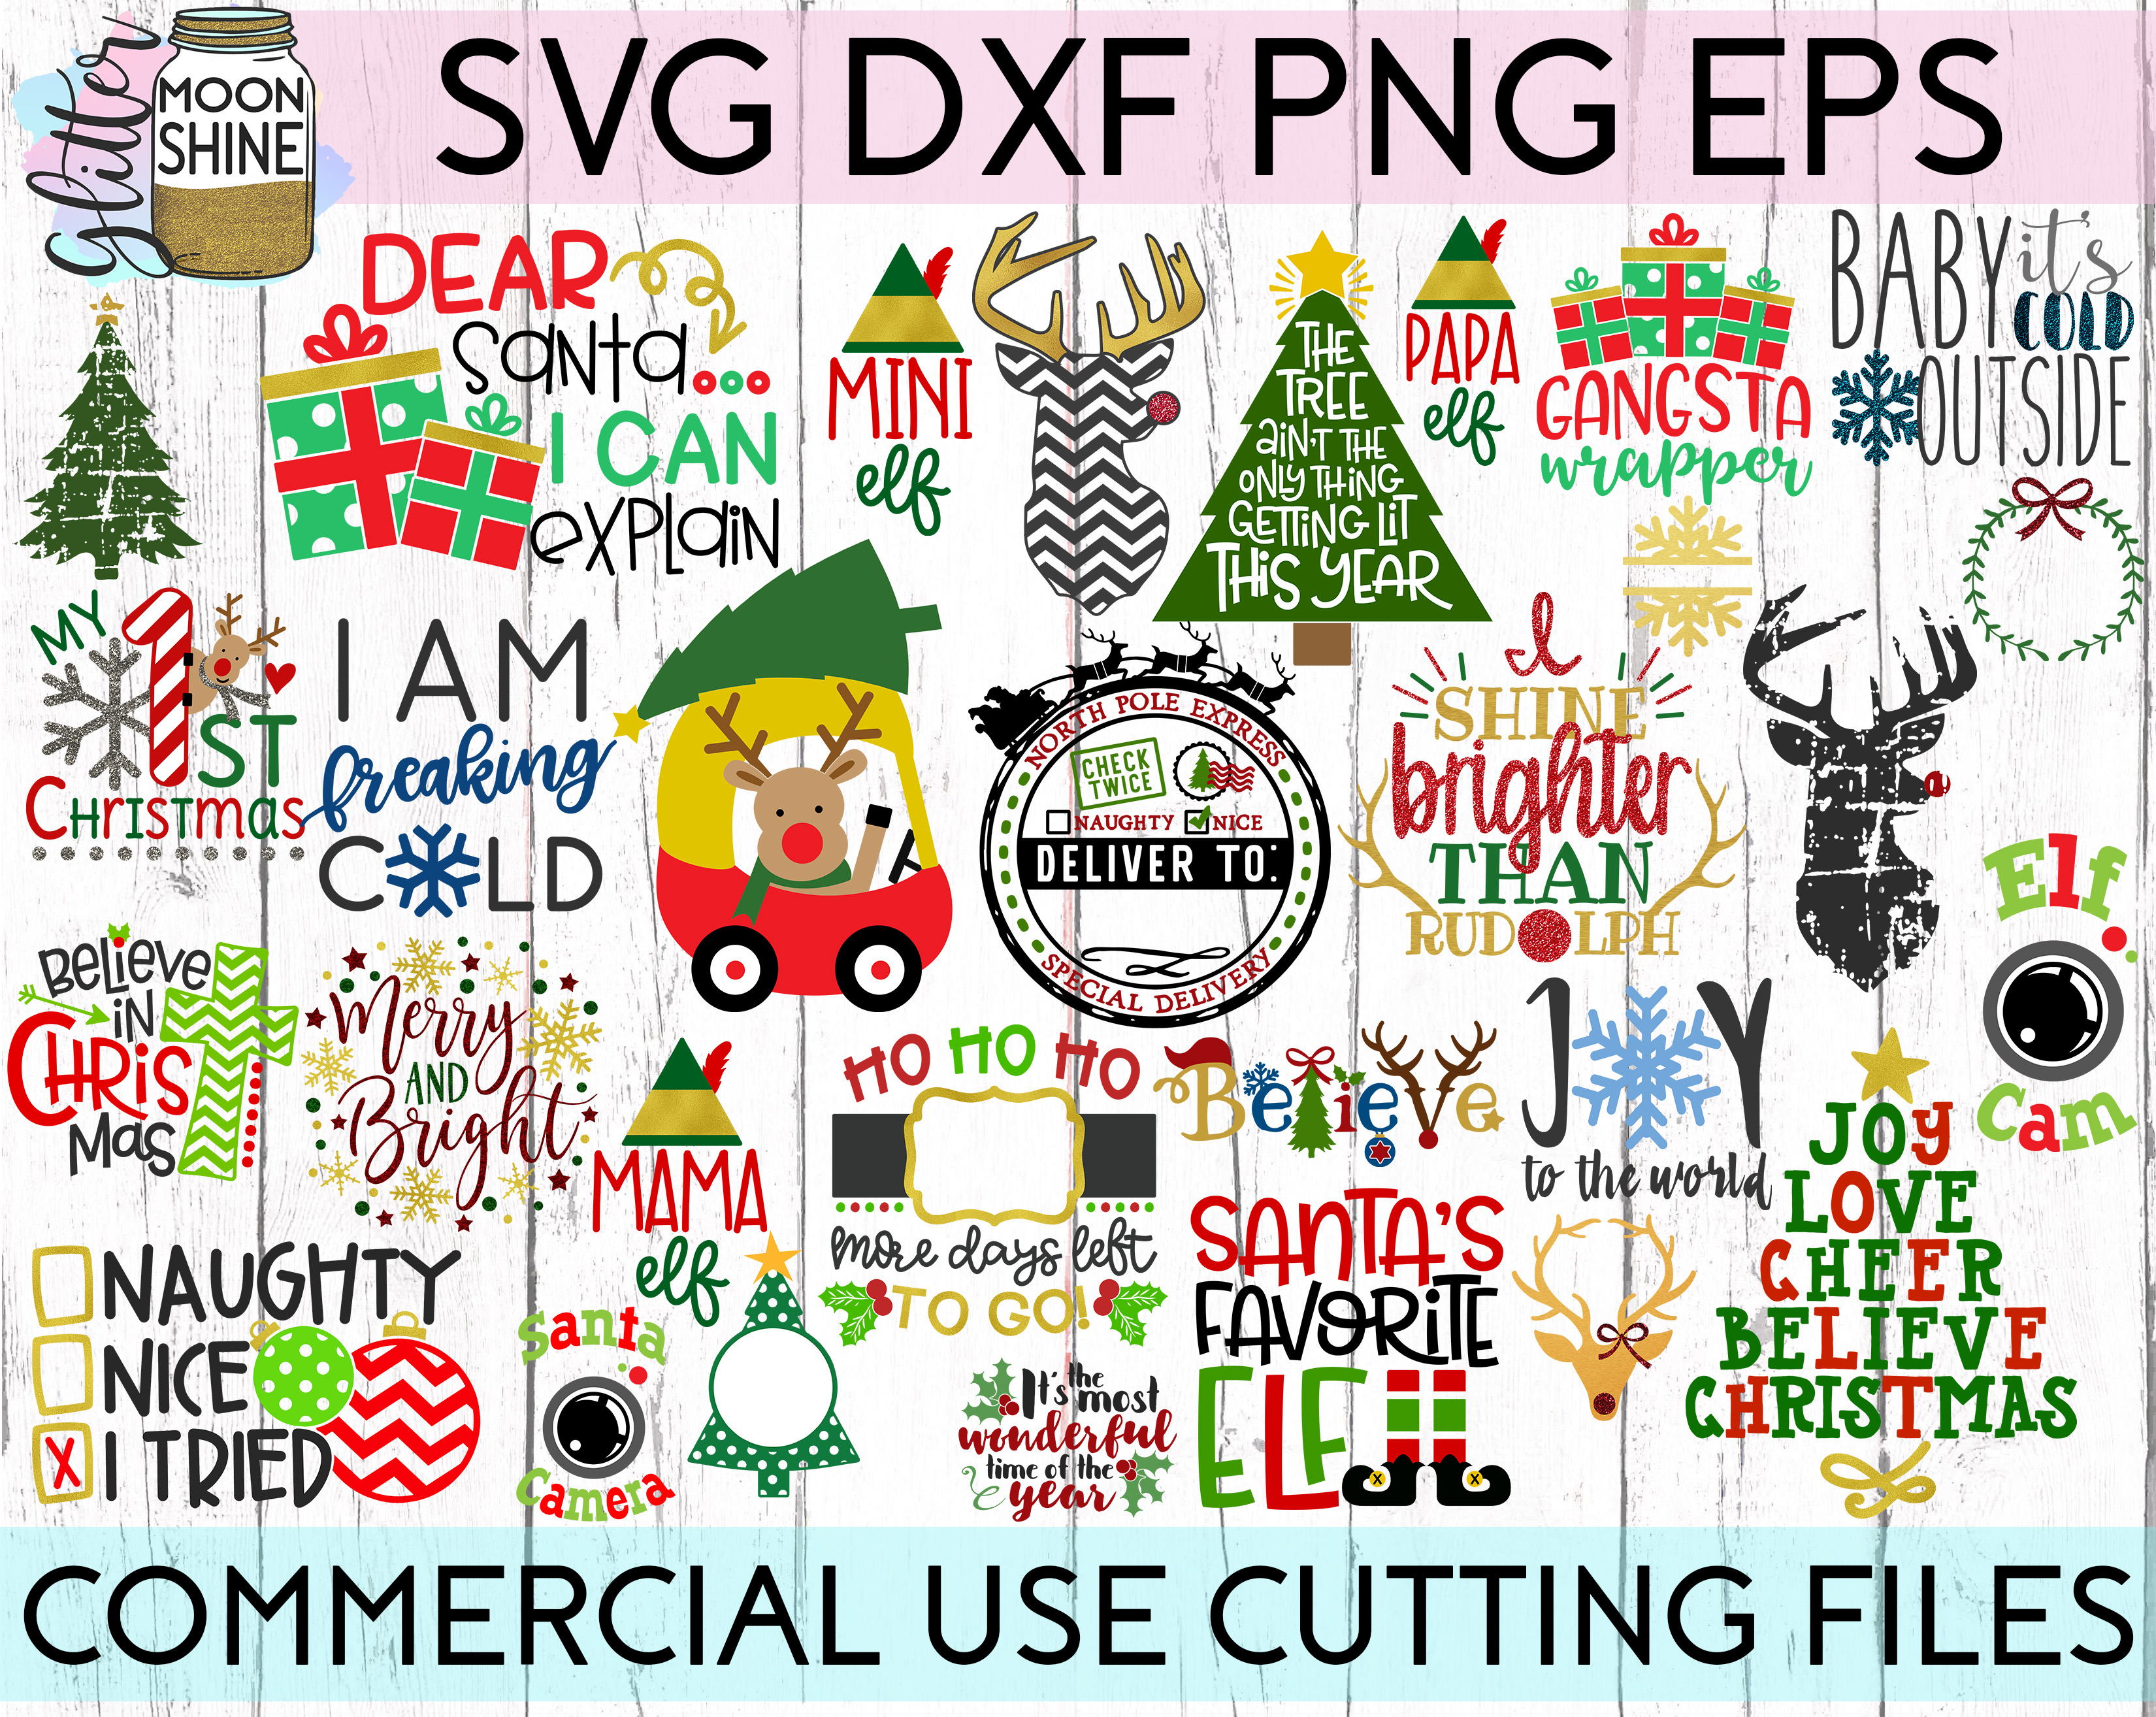 HUGE Christmas Bundle SVG DXF PNG EPS Cutting Files example image 1